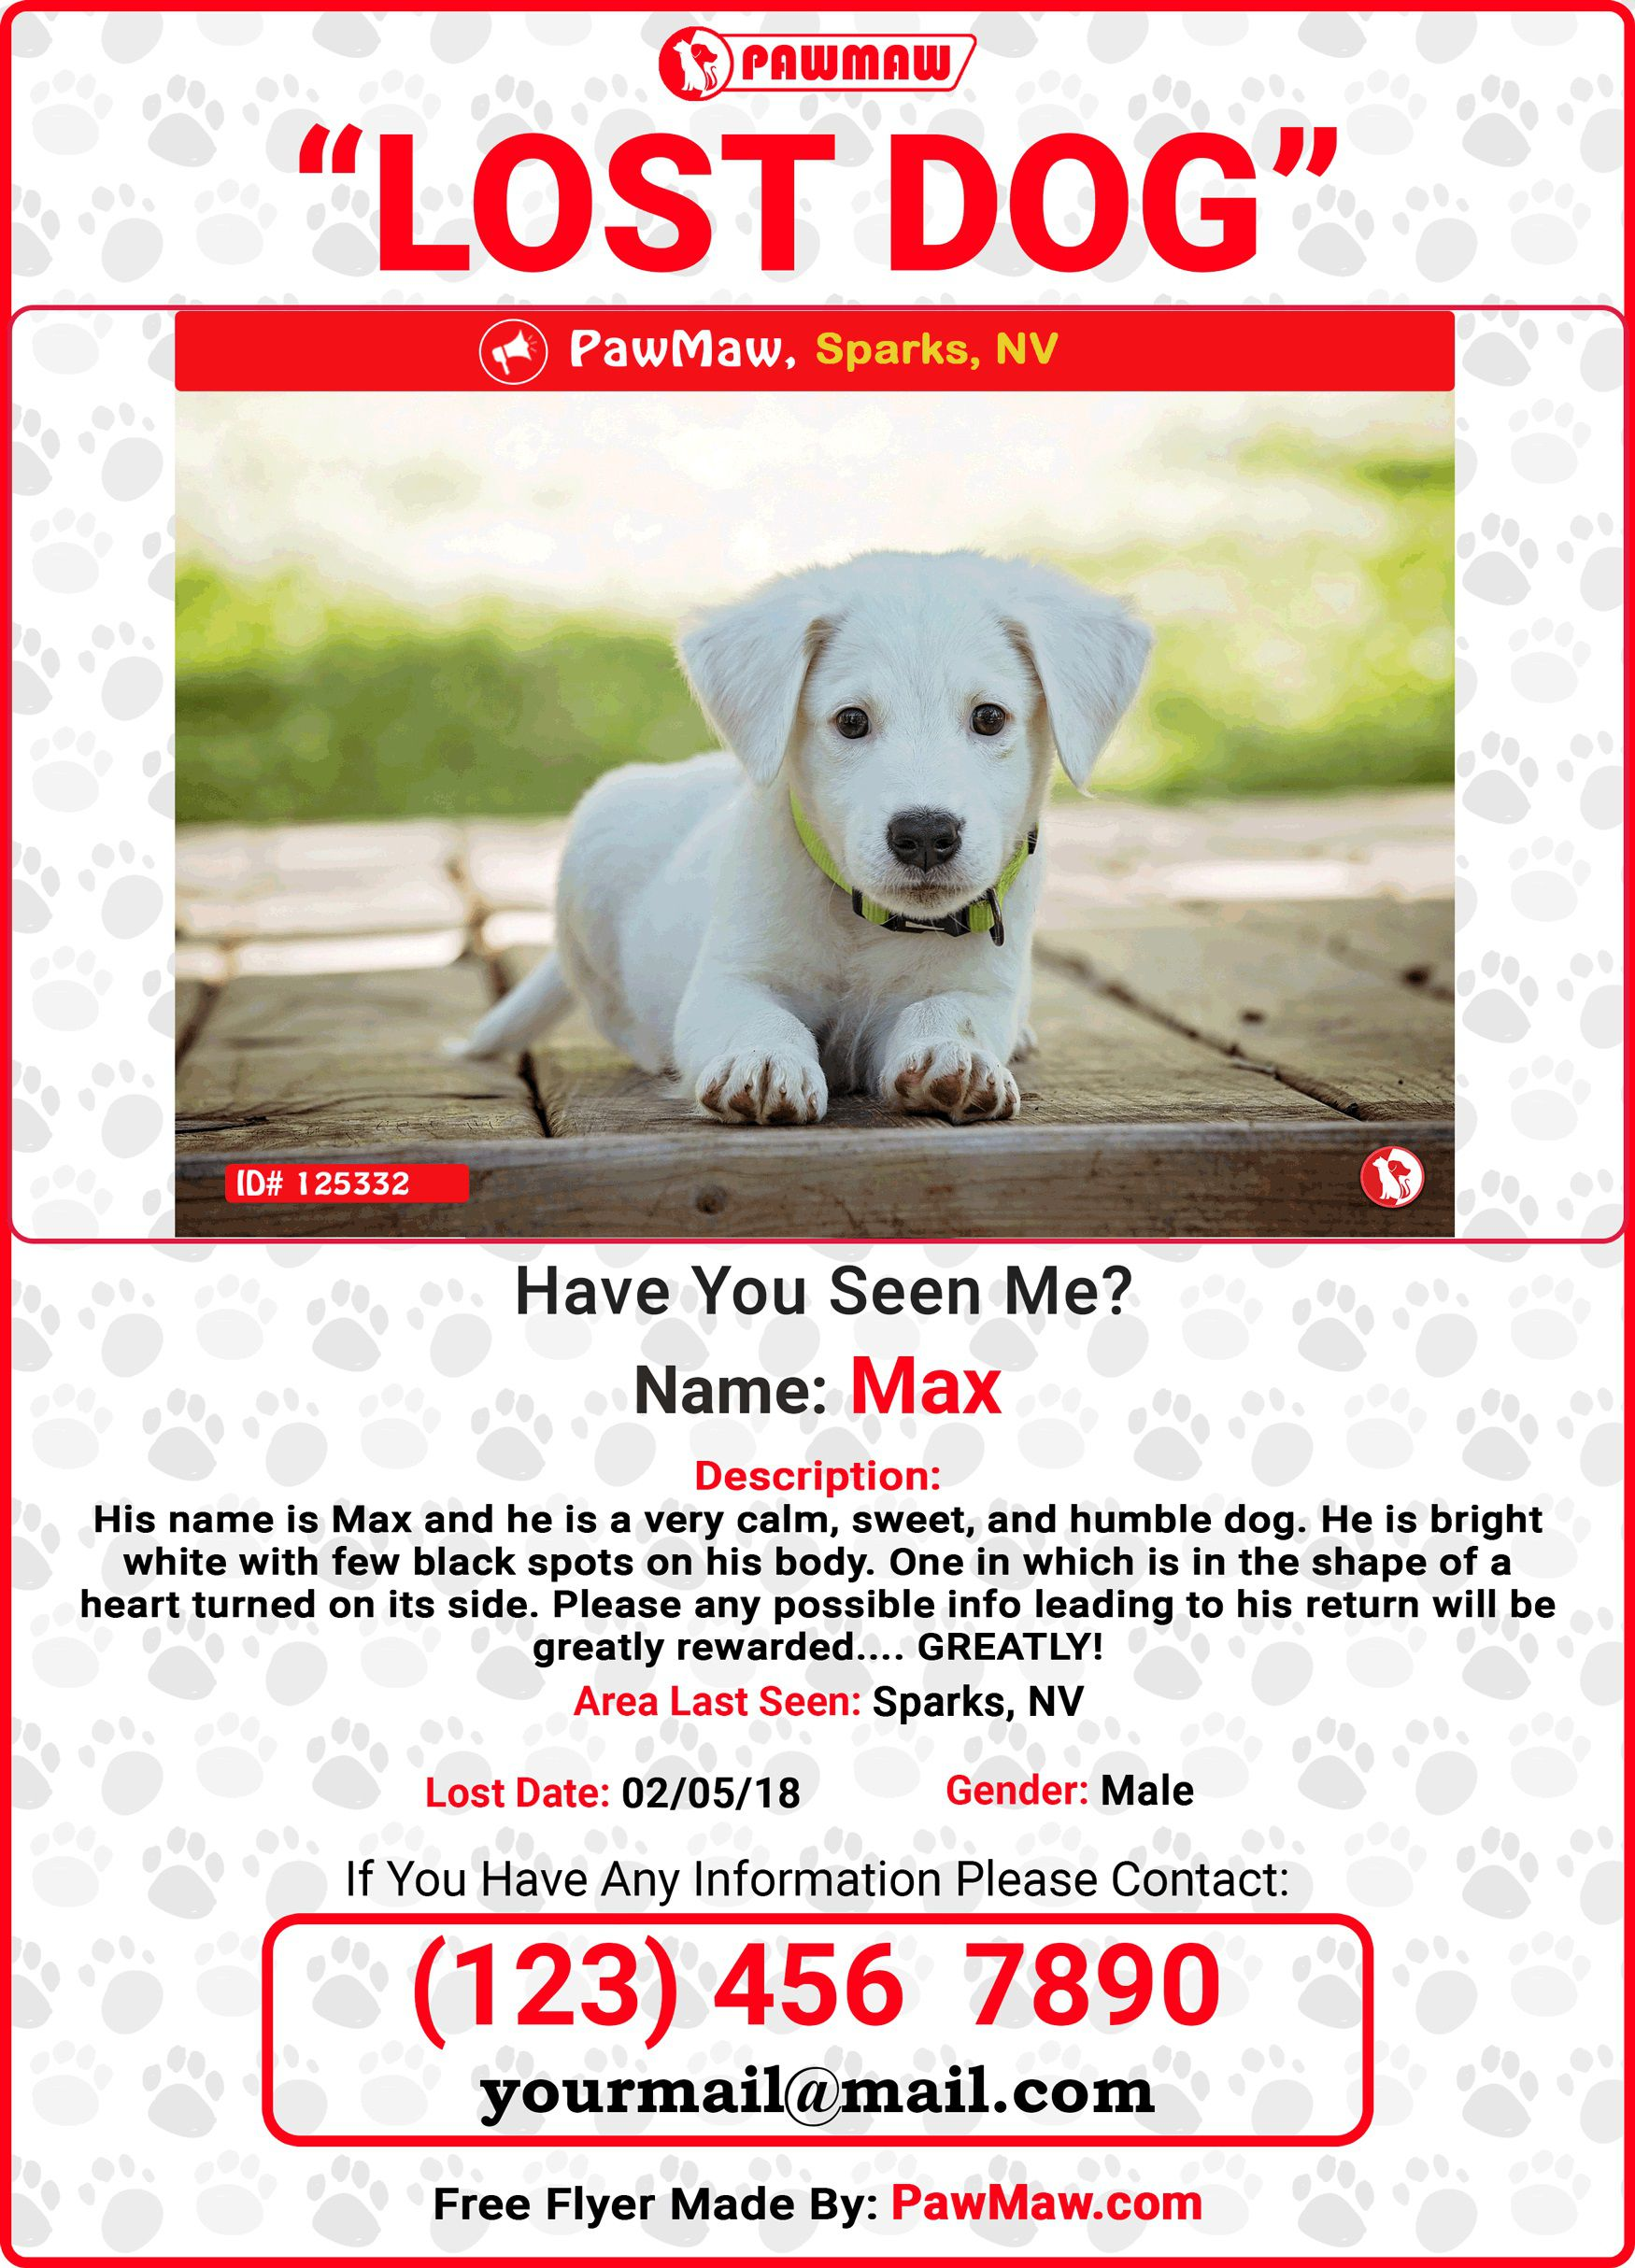 005 Unforgettable Lost Dog Flyer Template Sample  Printable Free Missing Pet